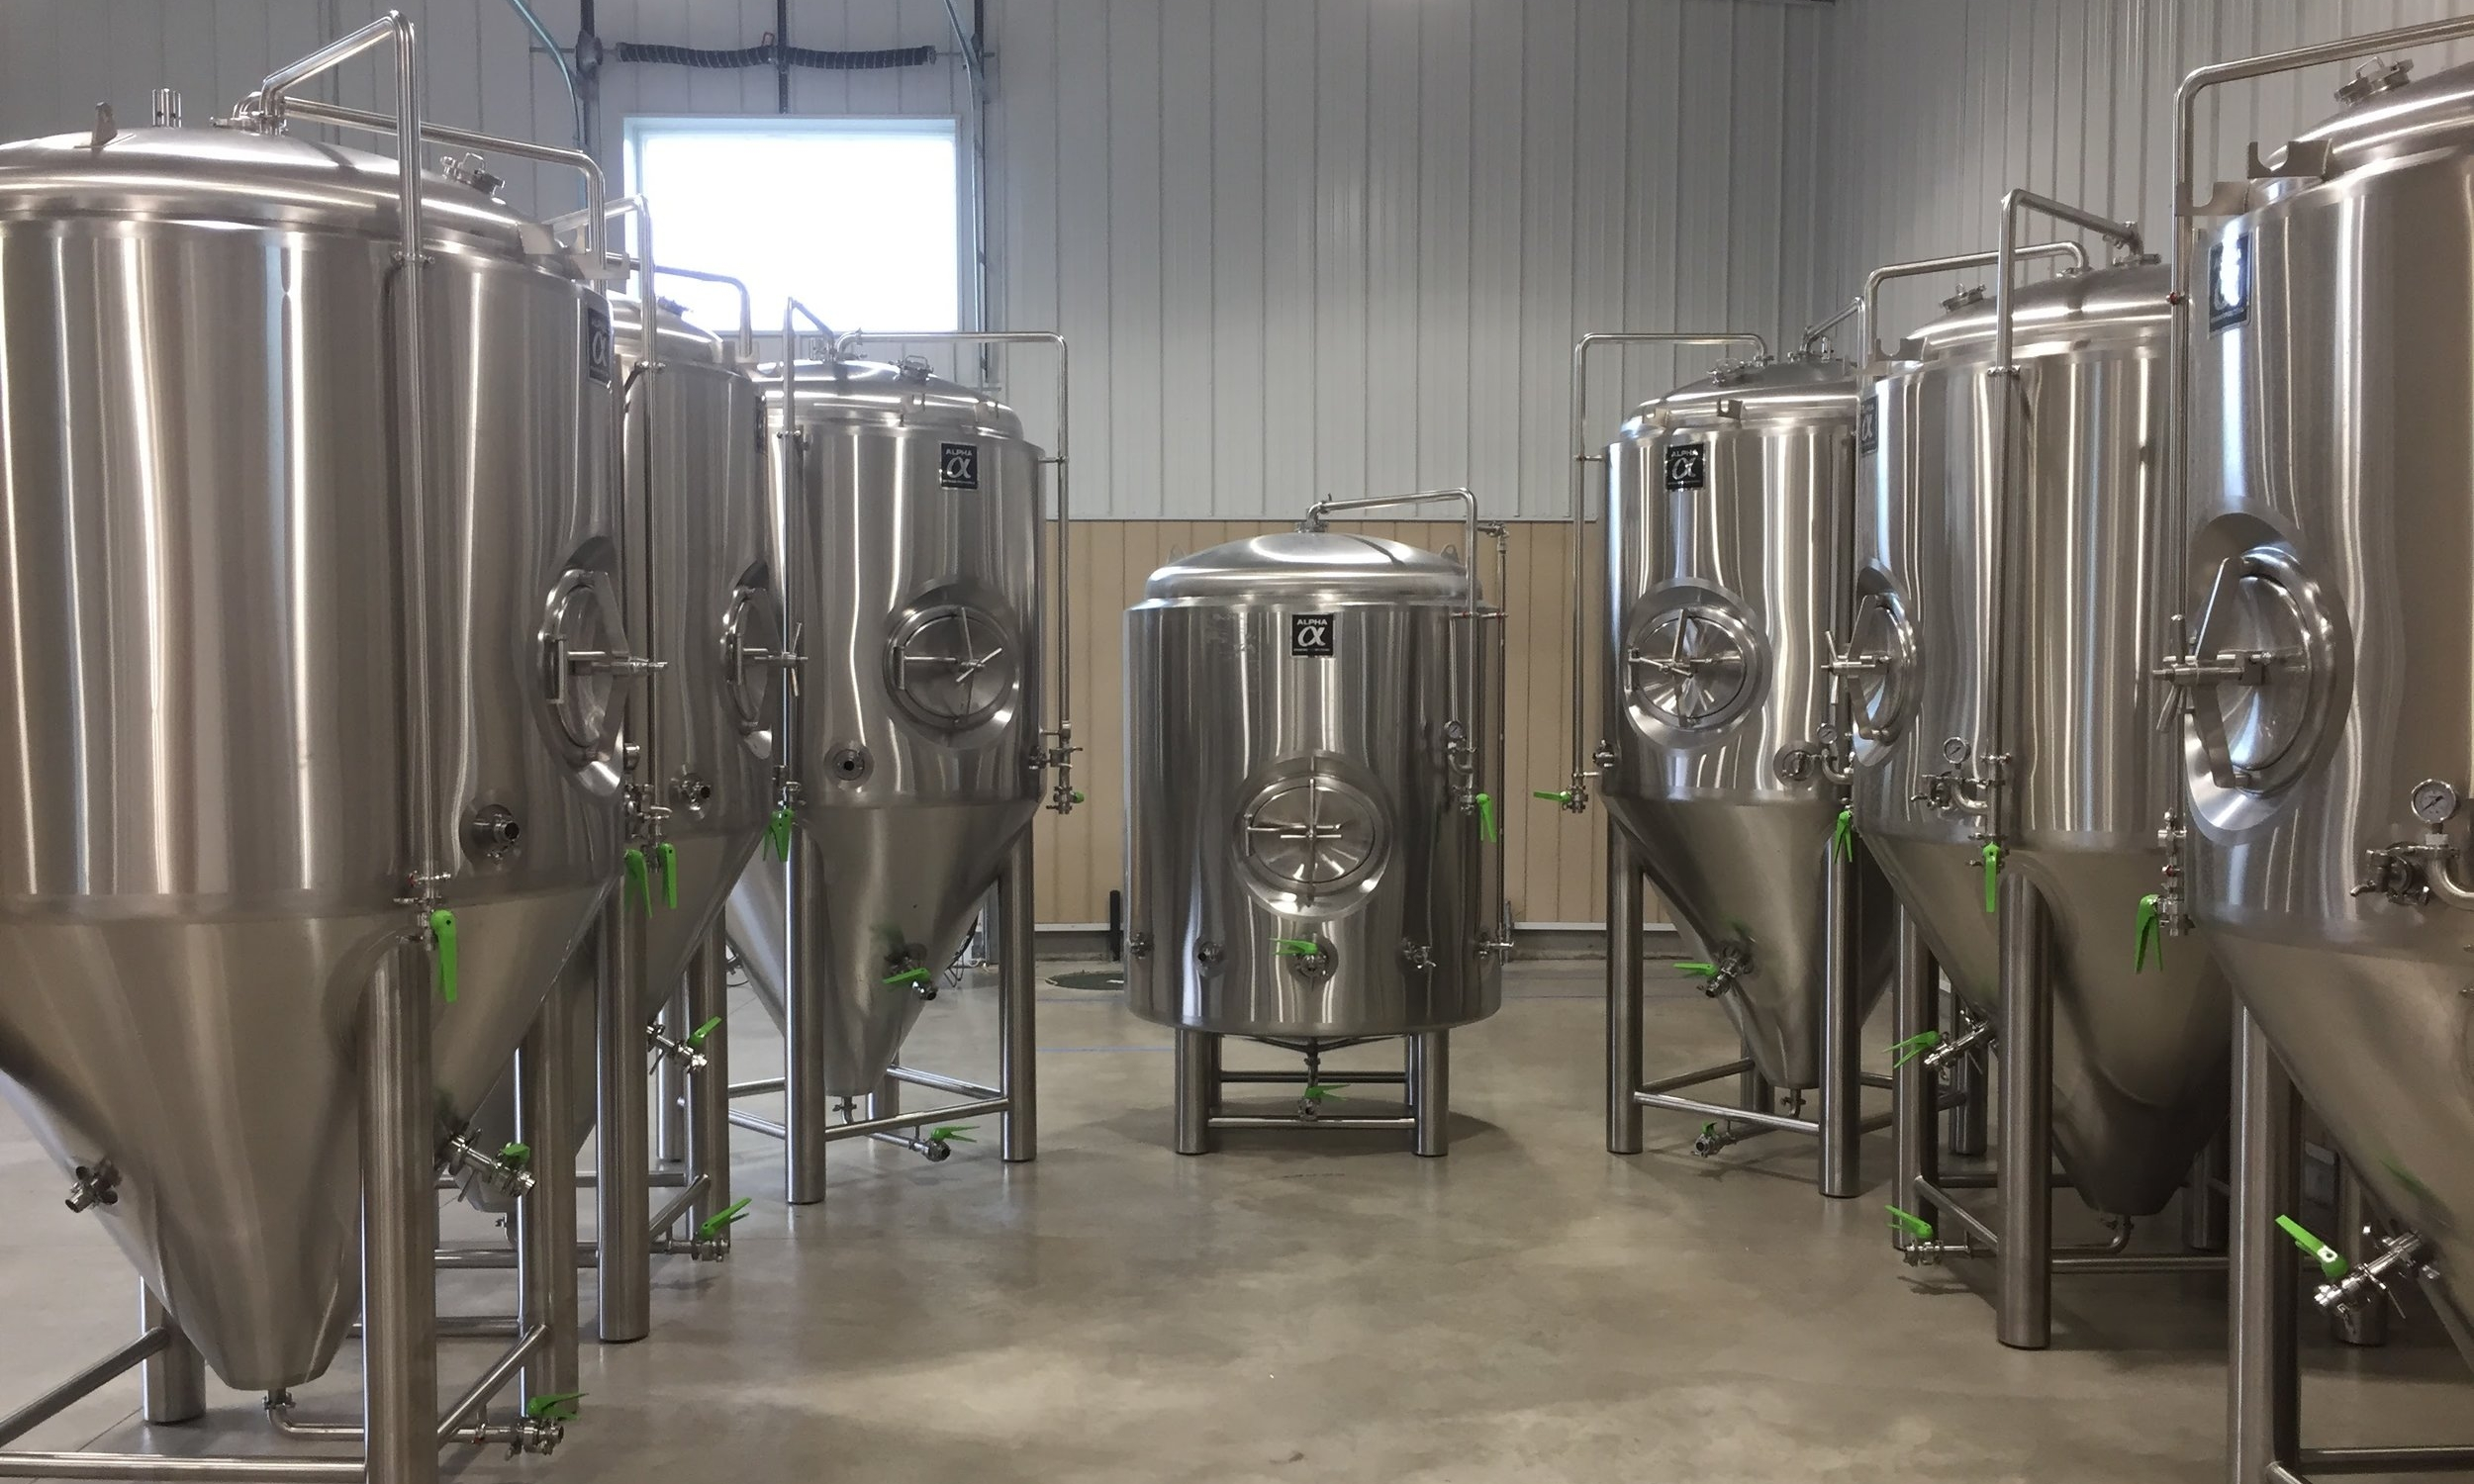 Shiny, shiny stainless steel.